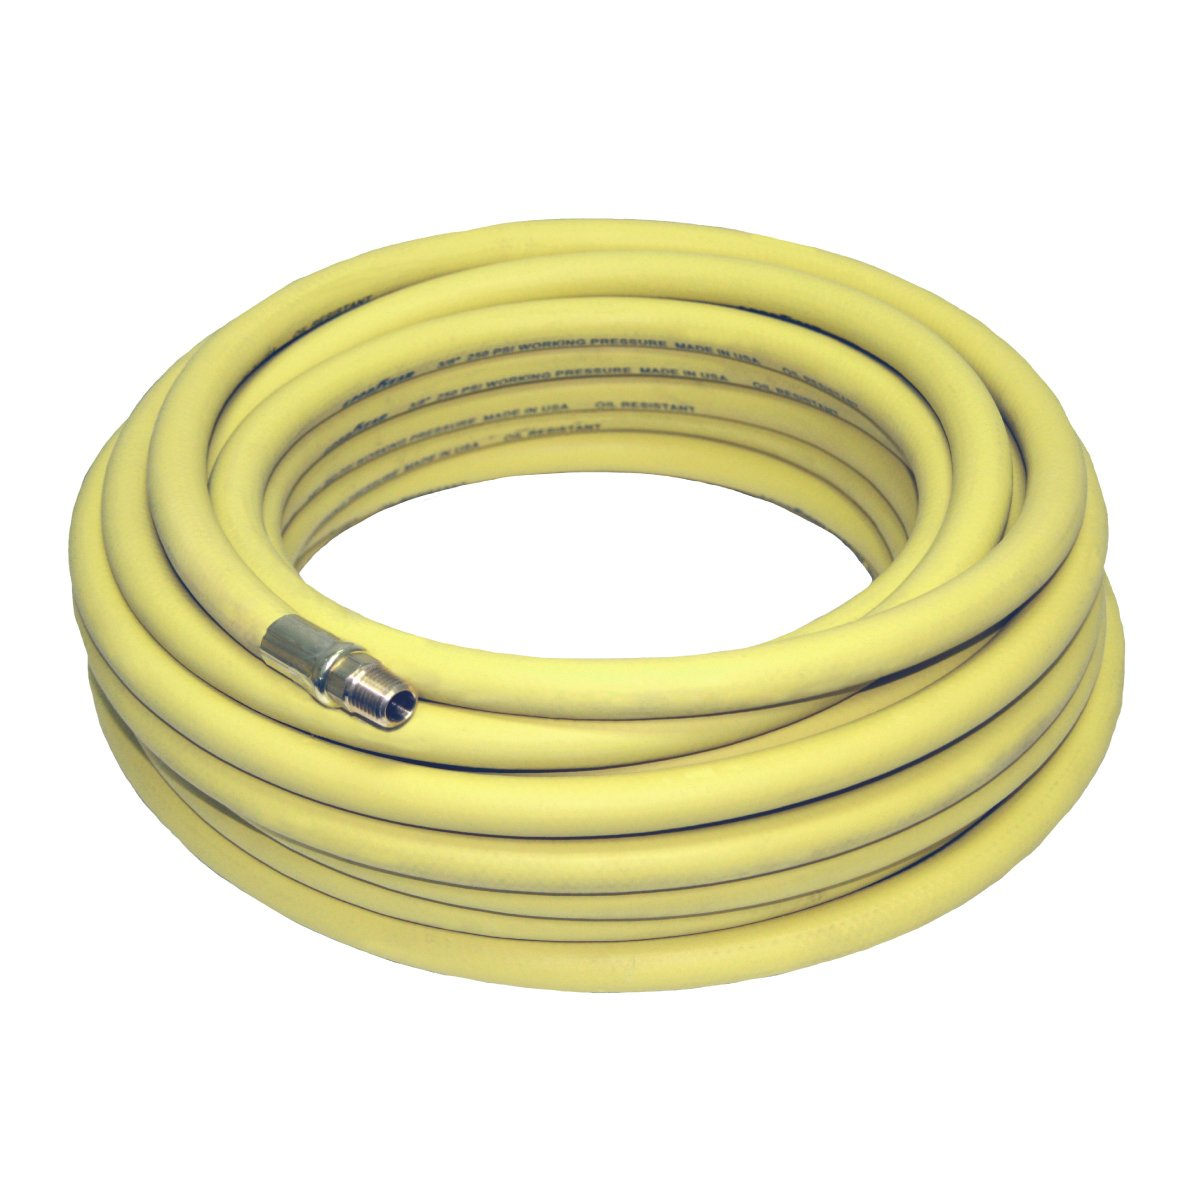 Goodyear 50' x 3/8'' Rubber Air Hose Yellow 250 Psi